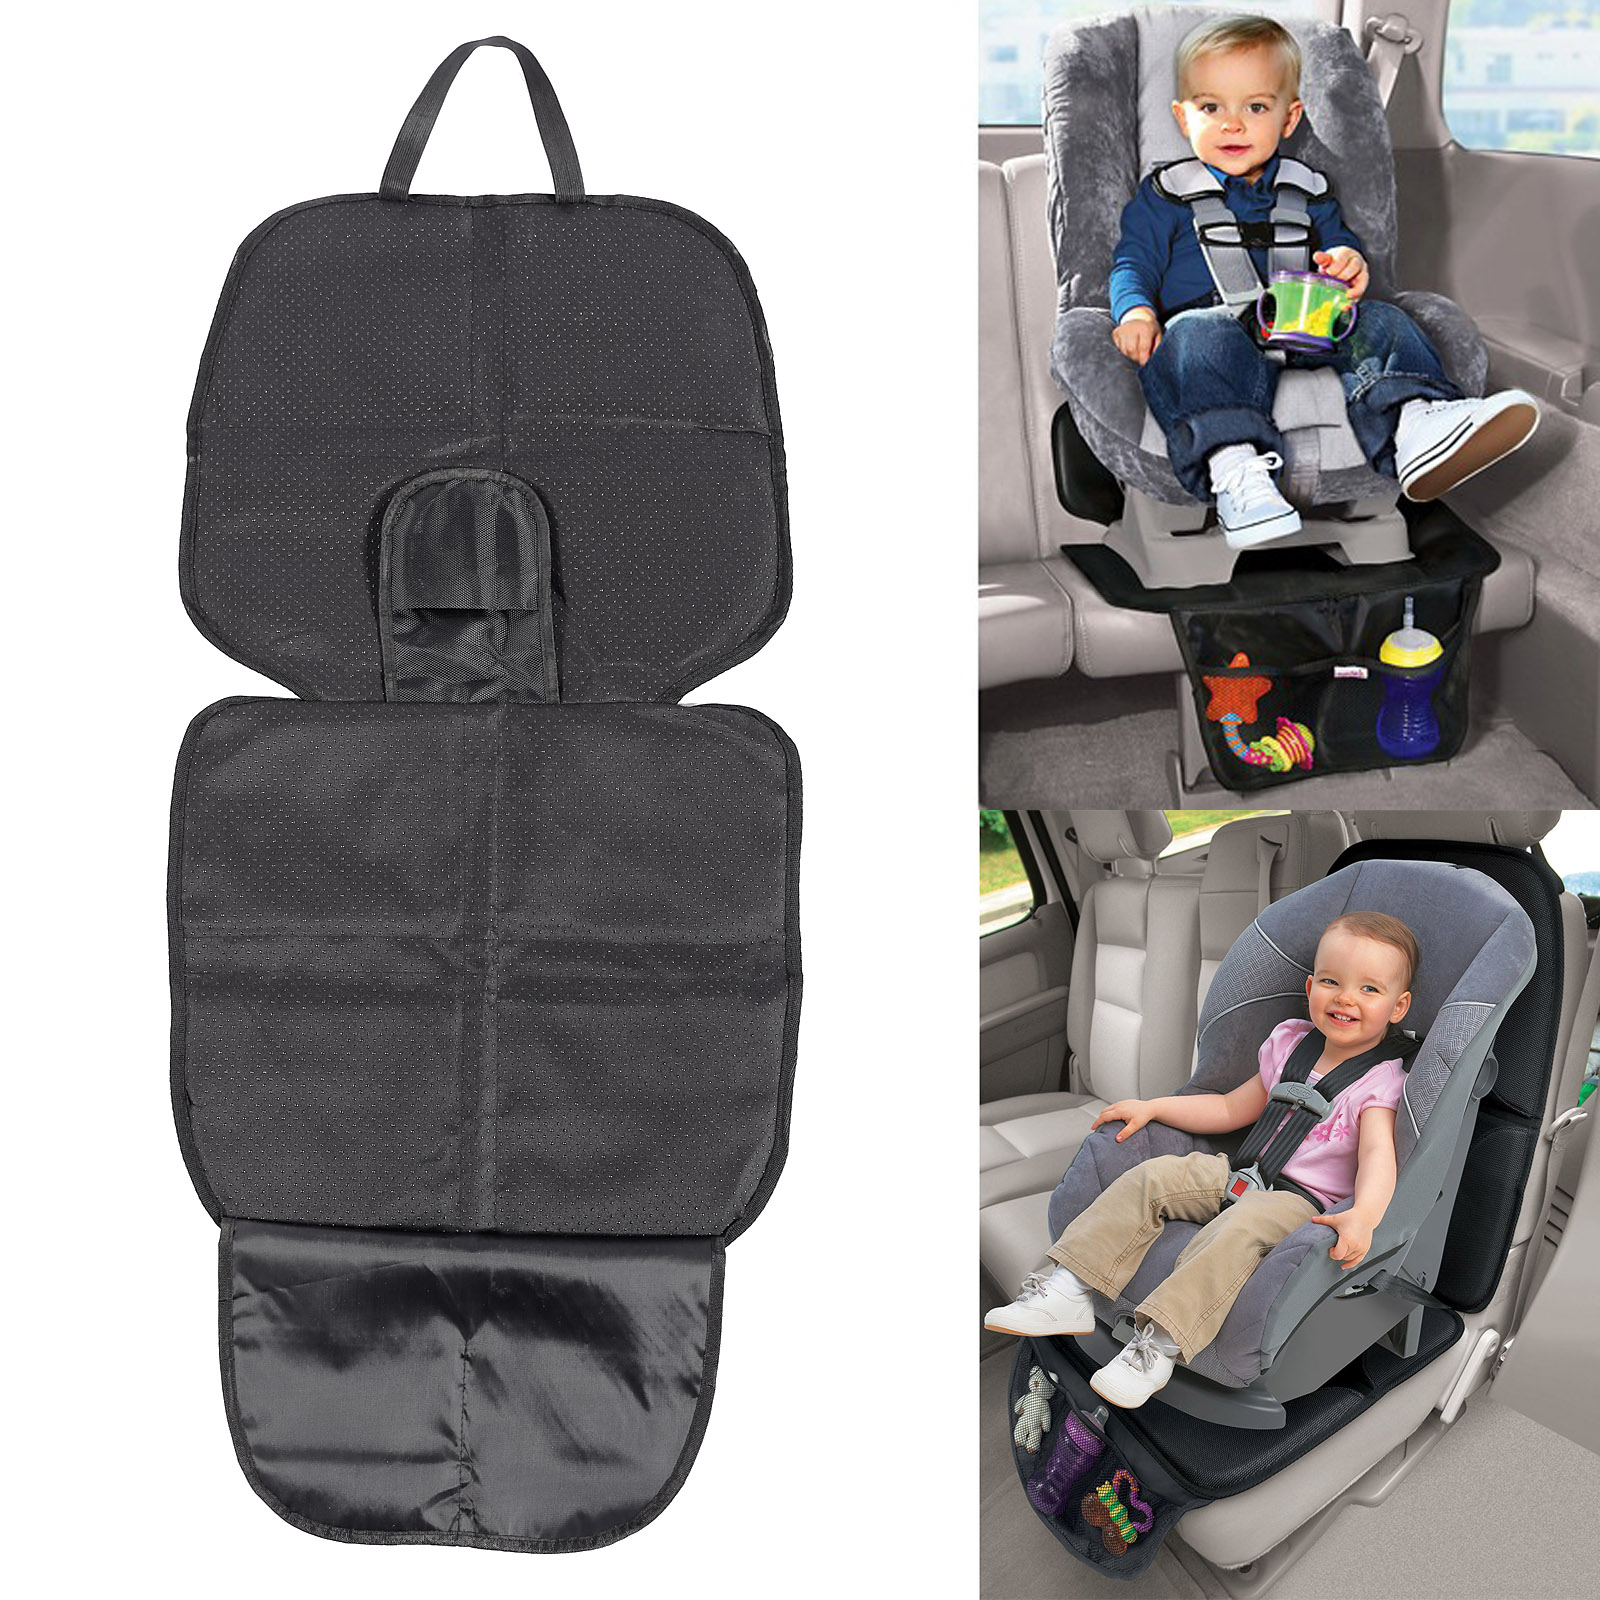 coussin antiderapant couvre si ge voiture protection b b enfant s curit tapis ebay. Black Bedroom Furniture Sets. Home Design Ideas